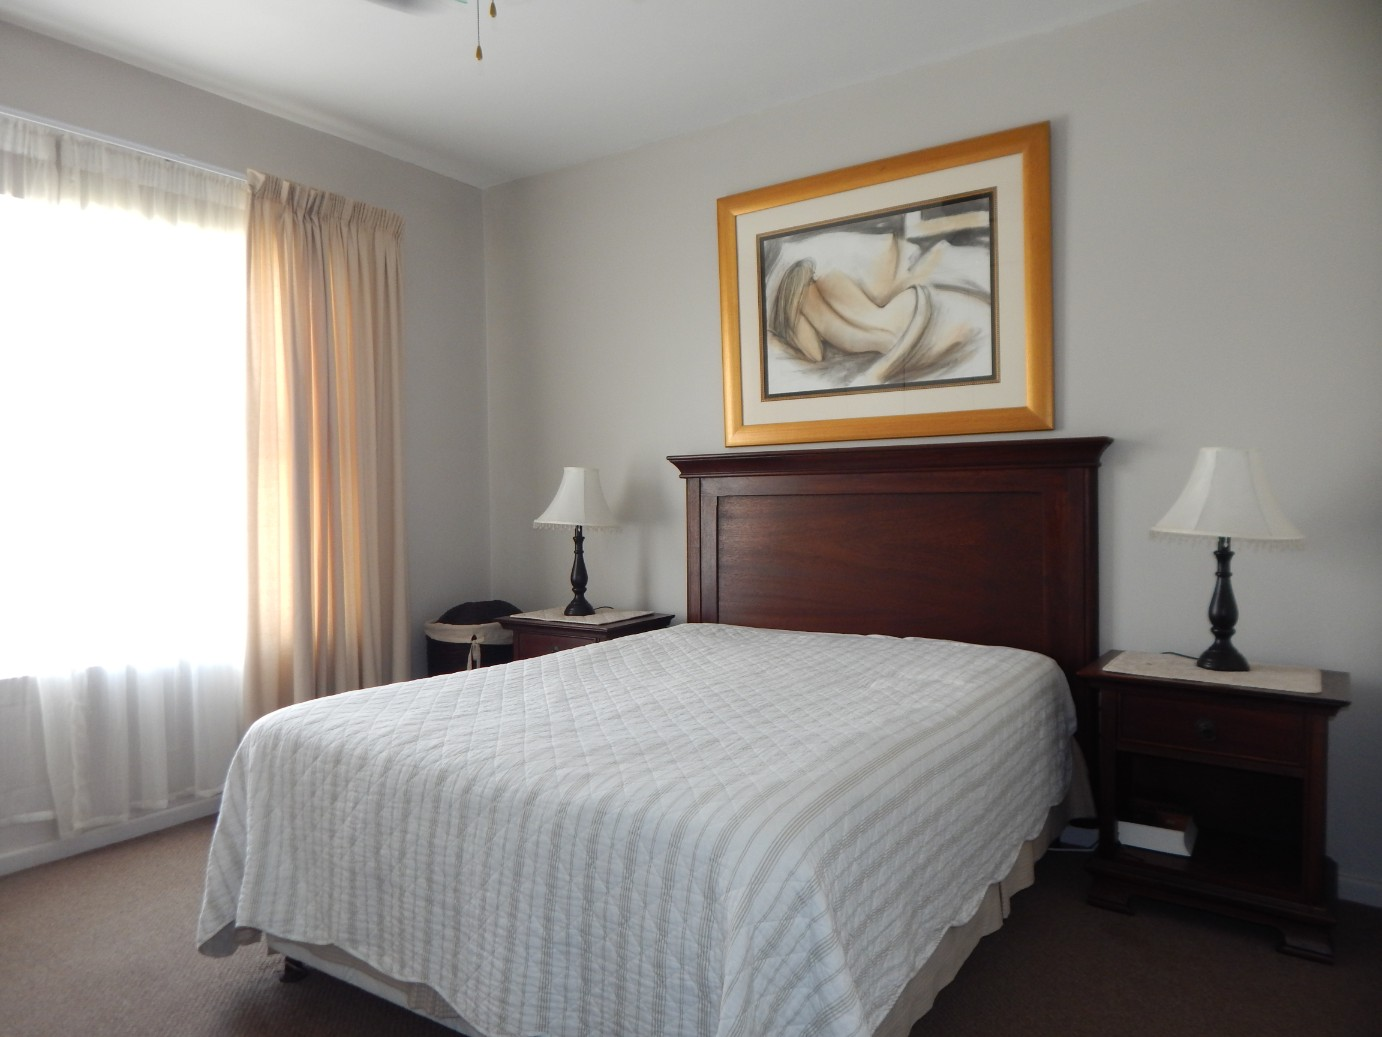 3 Bedroom Apartment for sale in Diaz Beach ENT0080239 : photo#9